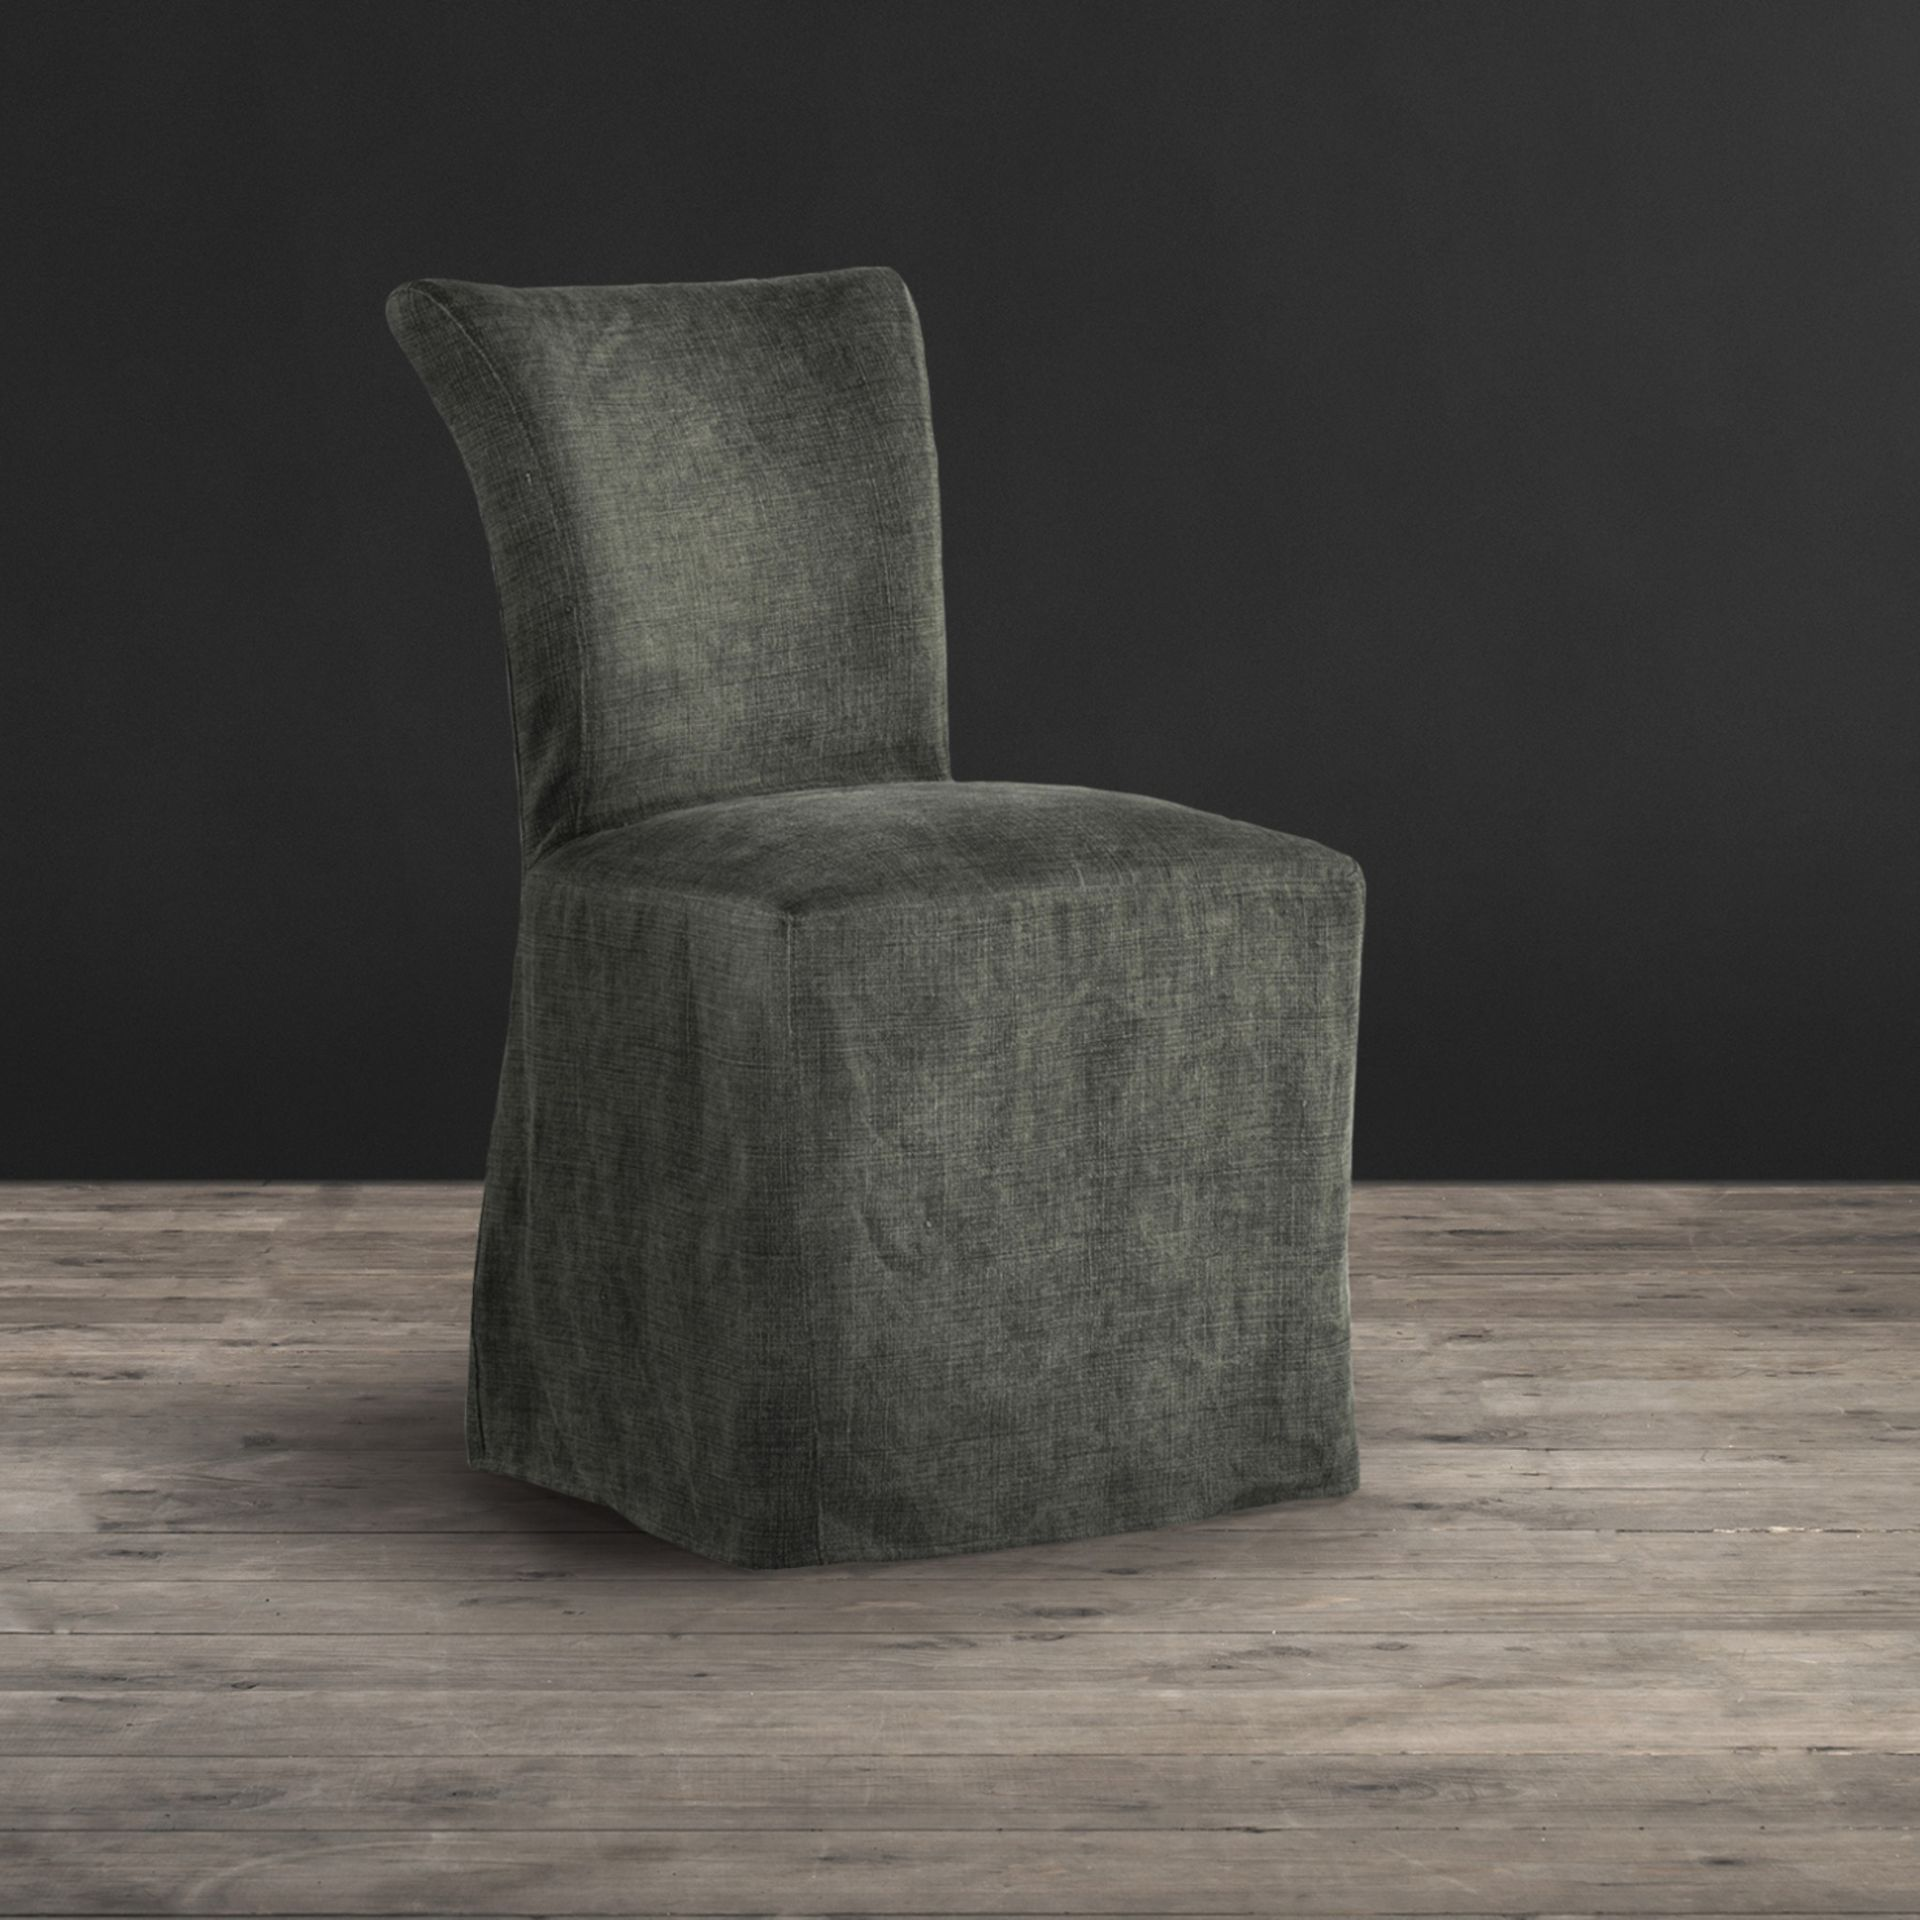 Lot 25 - Mimi Chair Scuff Linen Bone With Loose Cover We've Given Our Best-Selling Mimi Dining Chair A